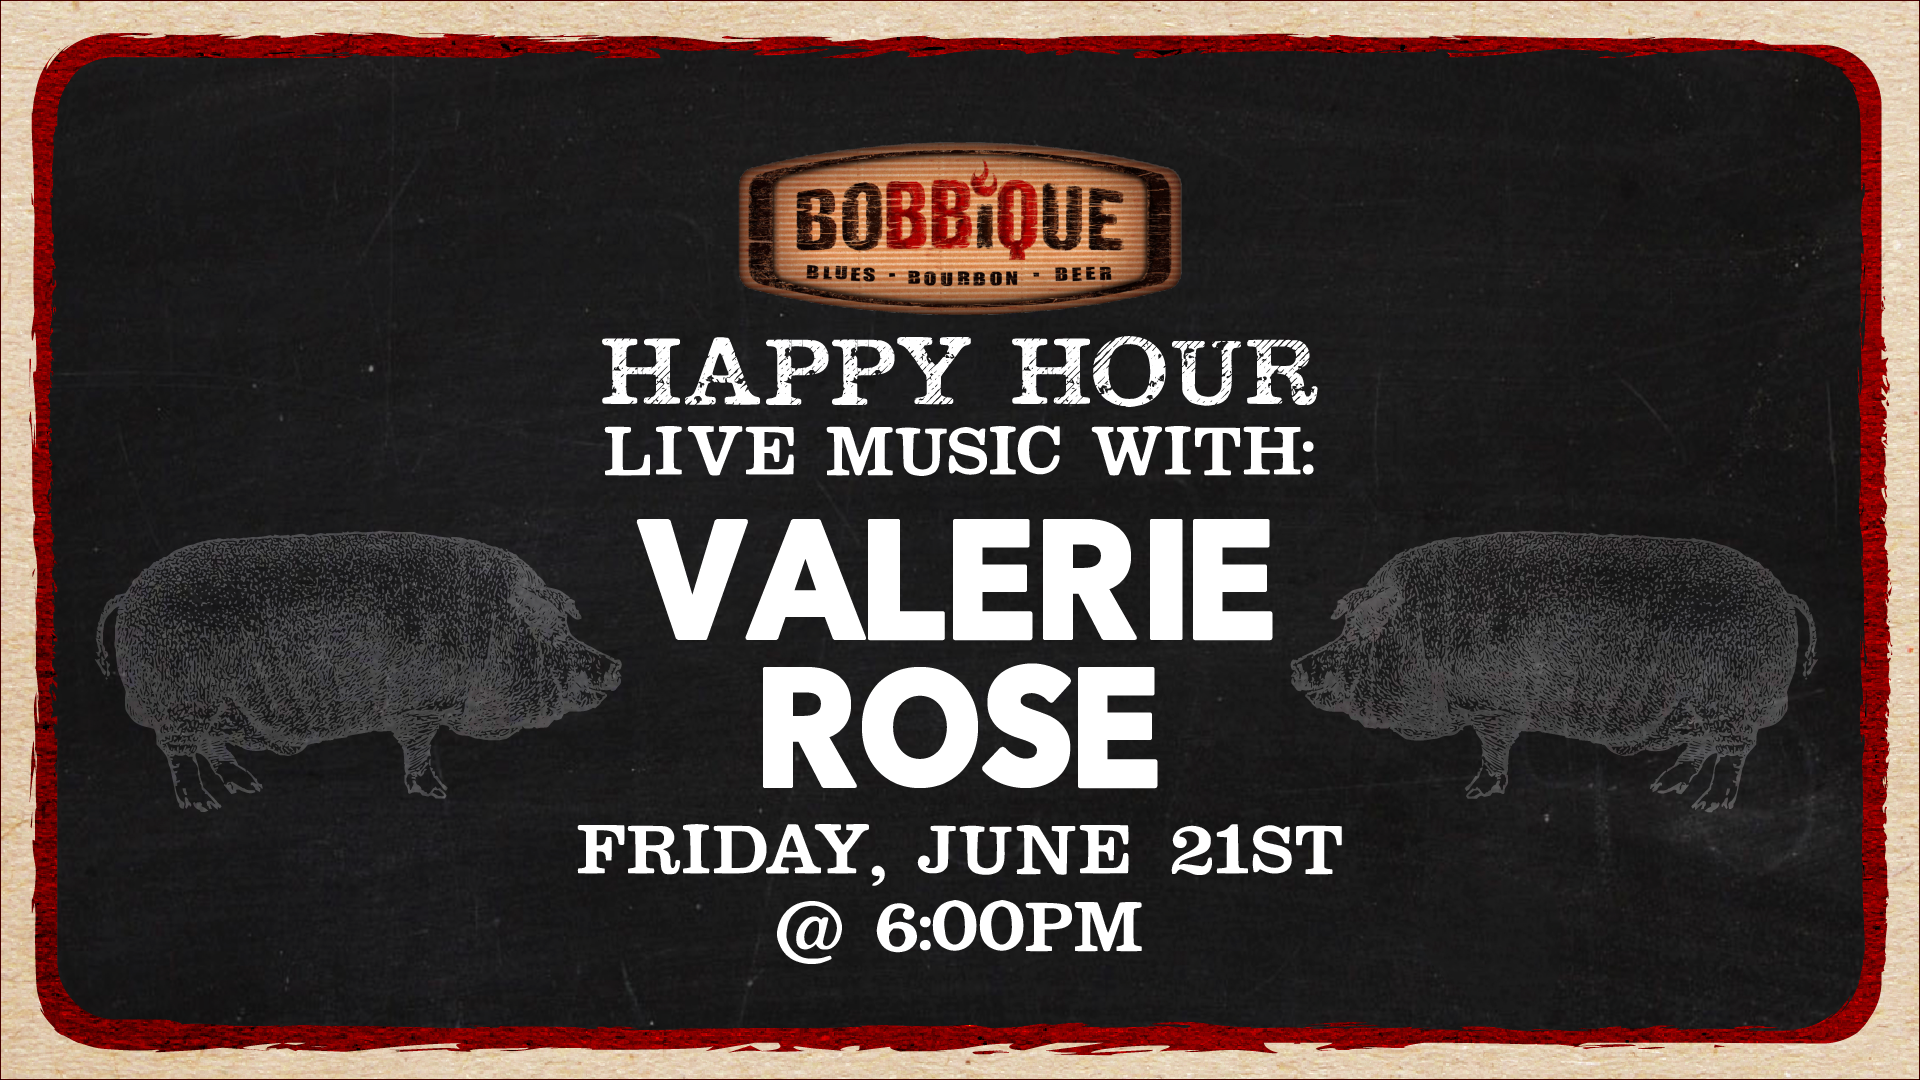 Happy Hour with Valerie Rose